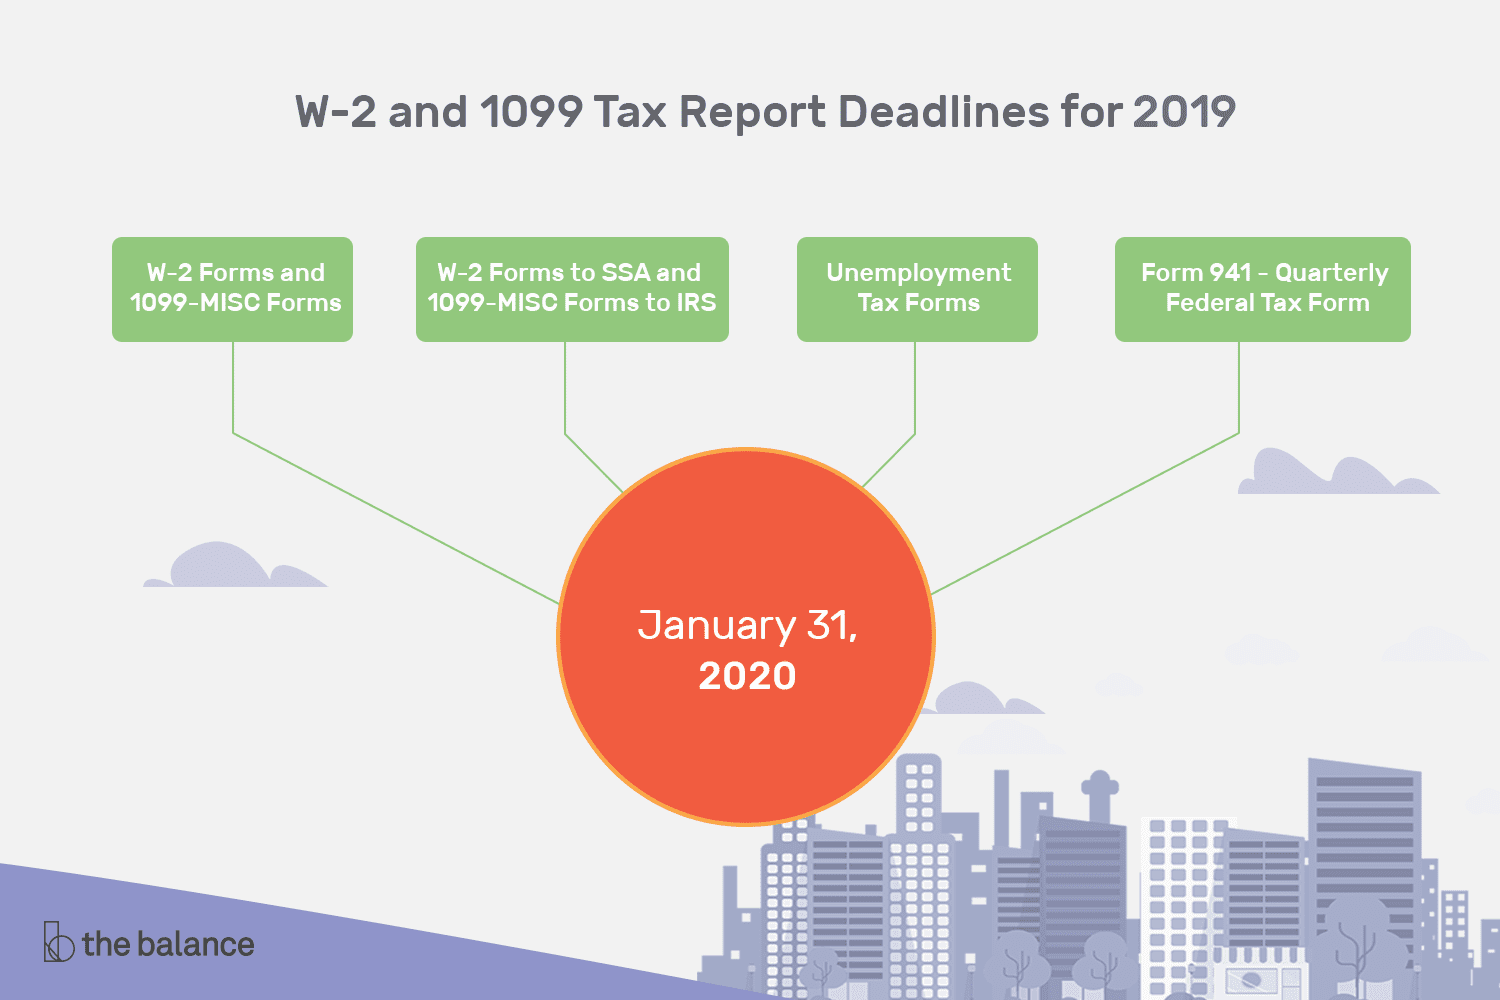 W-2 And 1099 Tax Report Deadlines For 2019 Taxes in Irs Payroll Tax Calendar 2020